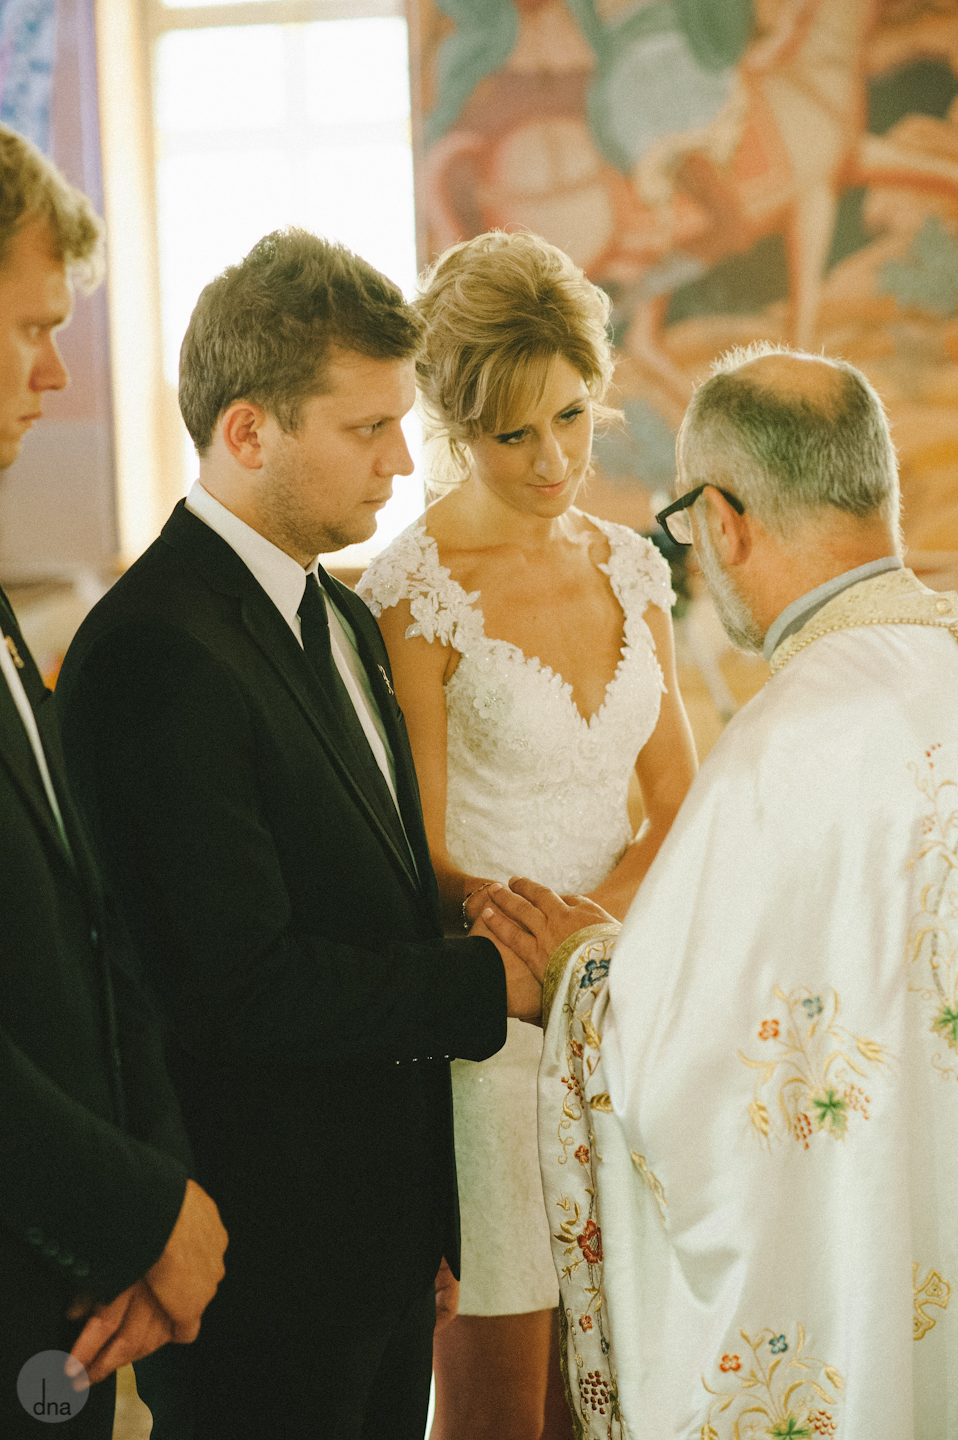 ceremony Chrisli and Matt wedding Greek Orthodox Church Woodstock Cape Town South Africa shot by dna photographers 280.jpg